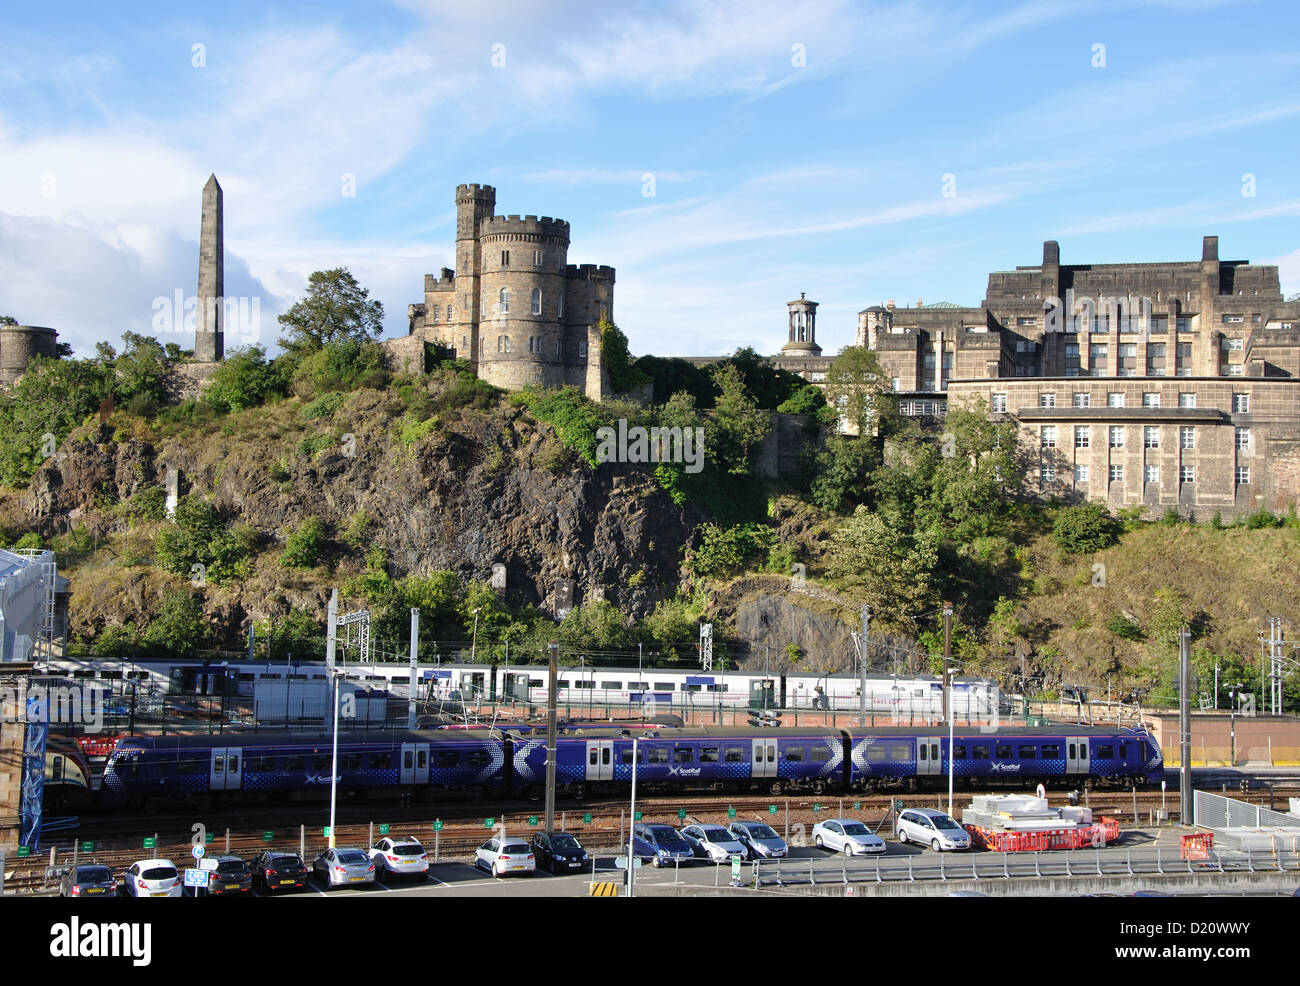 Waverley Station, Edinburgh, West Lothian, Scotland, UK - Stock Image